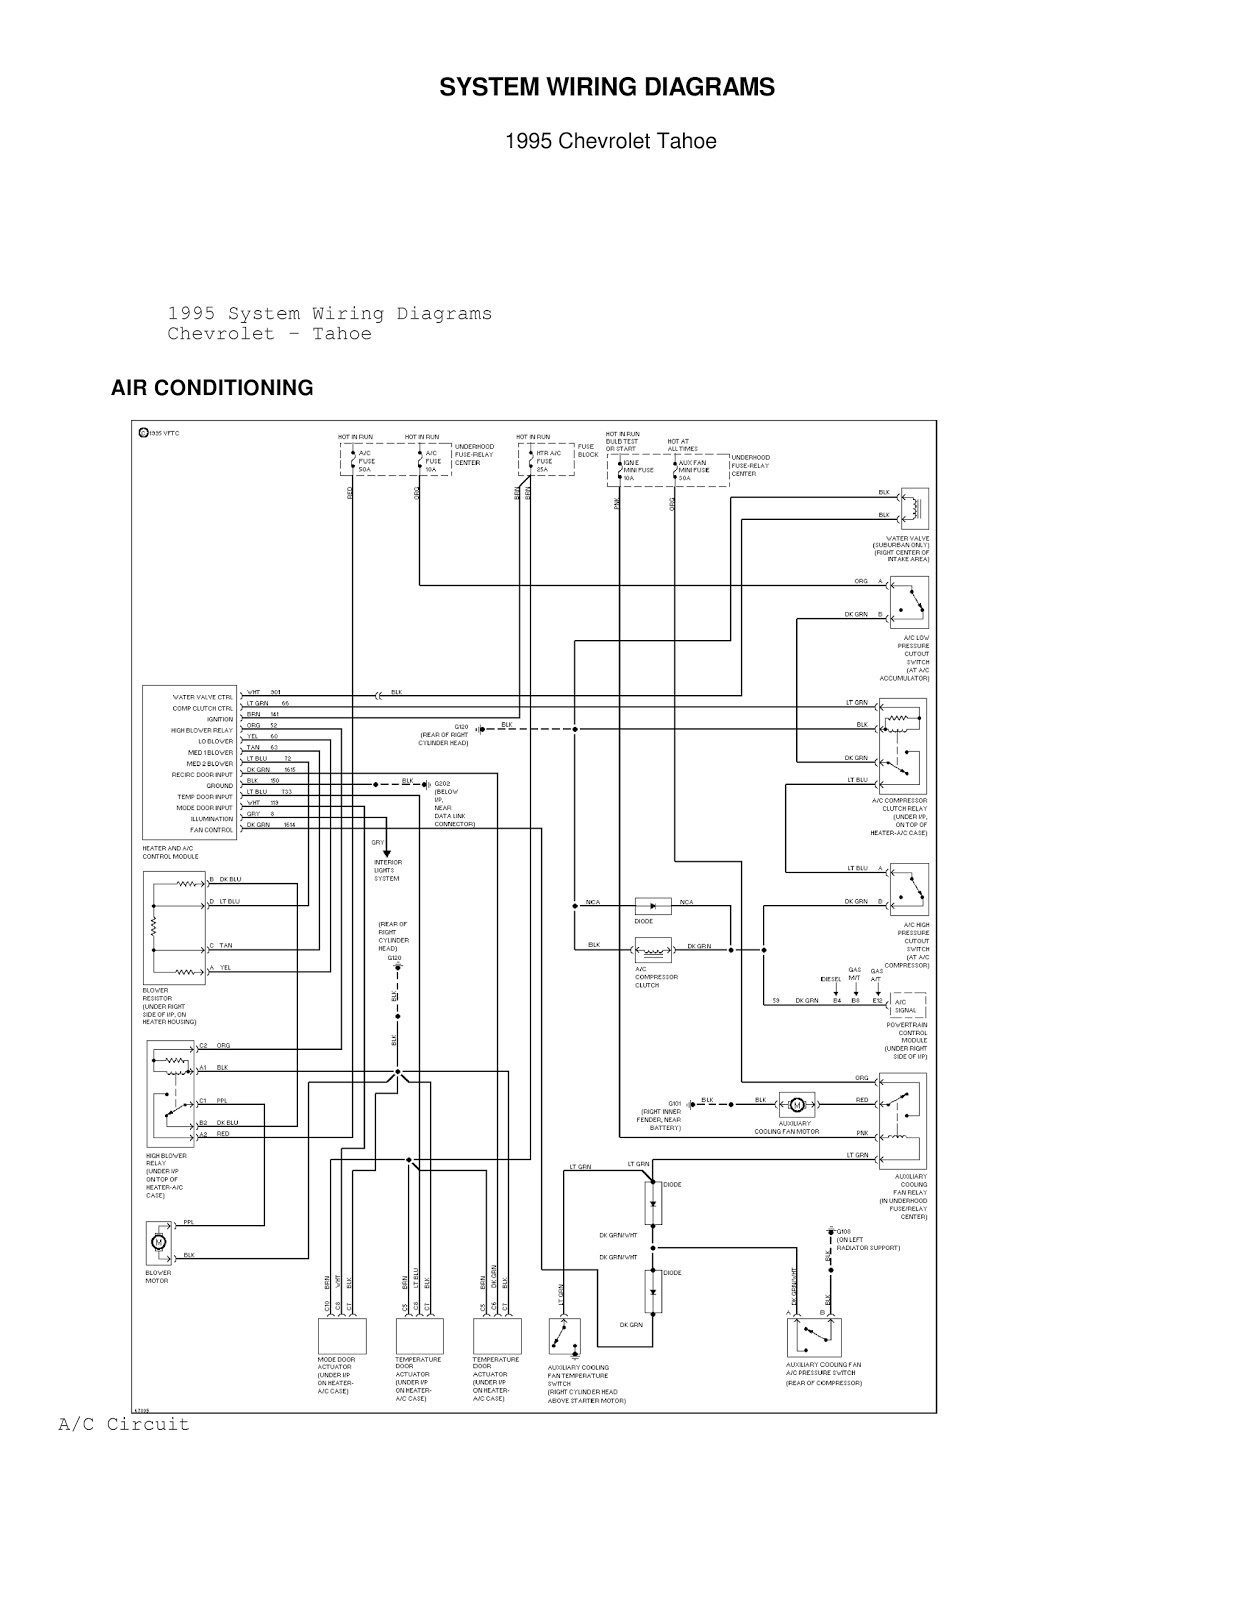 k2500 air conditioning diagram  k2500  free engine image